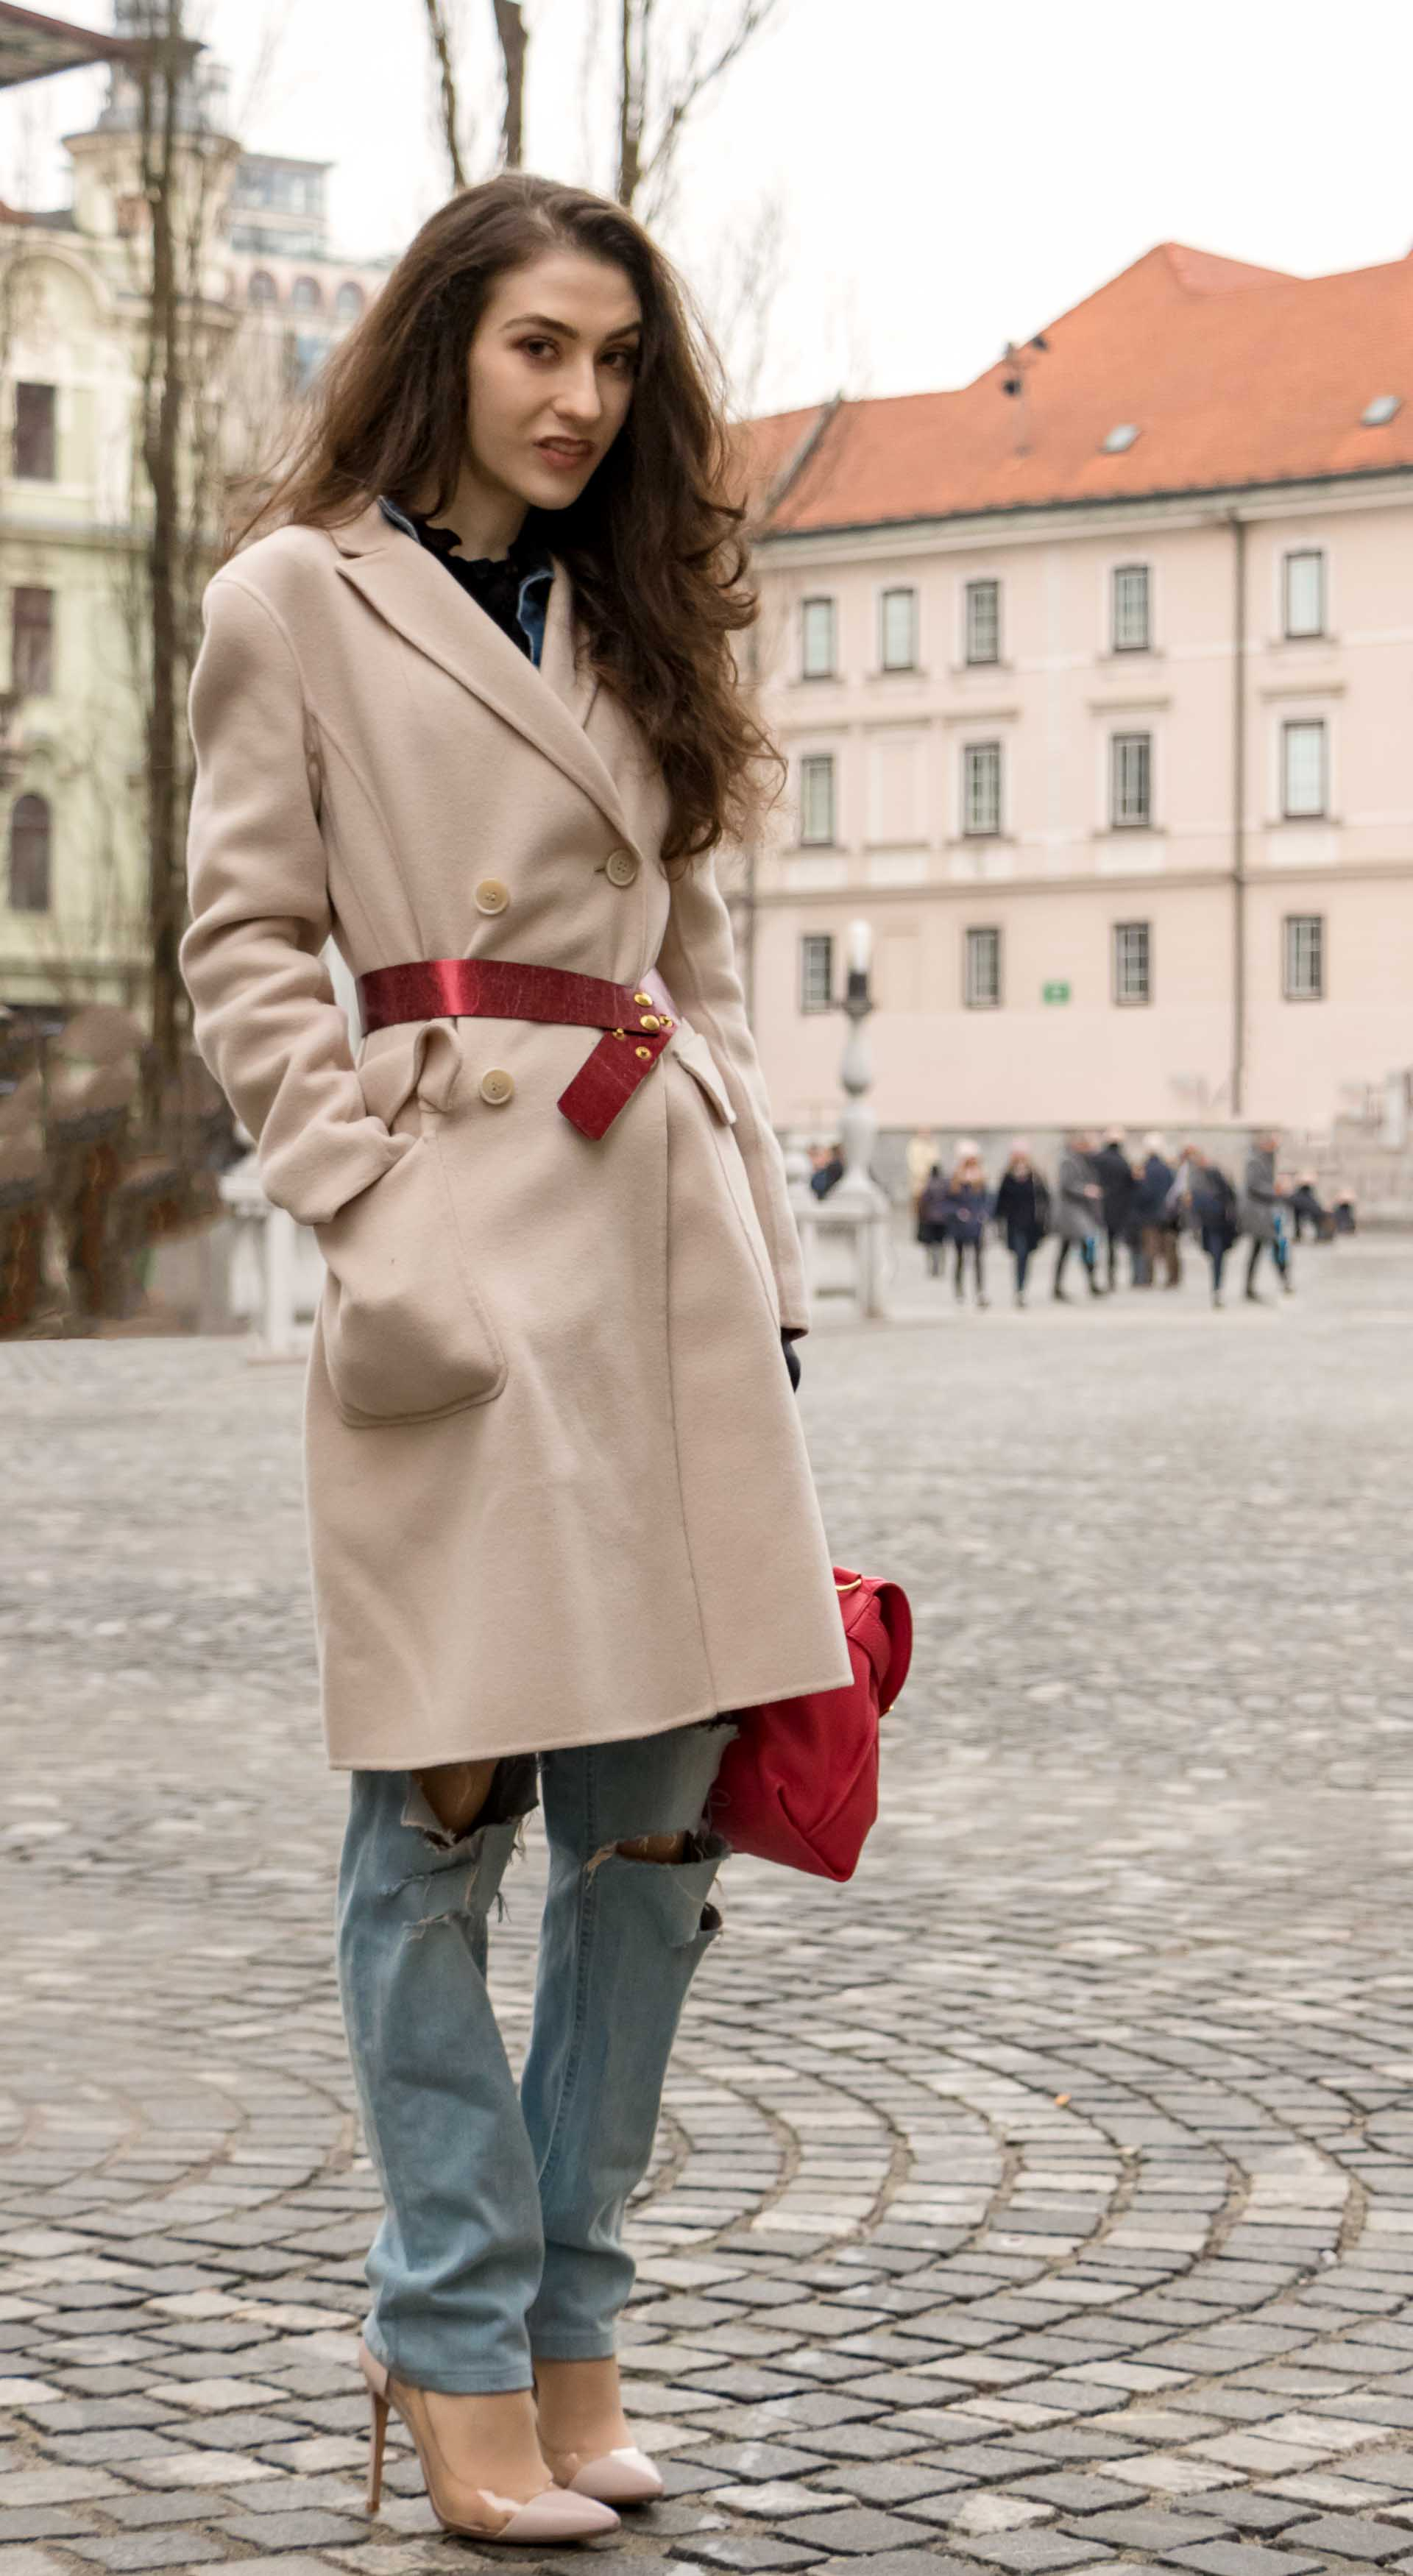 Fashion Blogger Veronika Lipar of Brunette from Wall Street dressed in ripped blue Levi's jeans, off-white double breasted Weekend Maxmara coat, red dangling belt, blush Gianvito Rossi plexi pumps, See by Chloe pink top handle bag, blue leather gloves on the street of Ljubljana